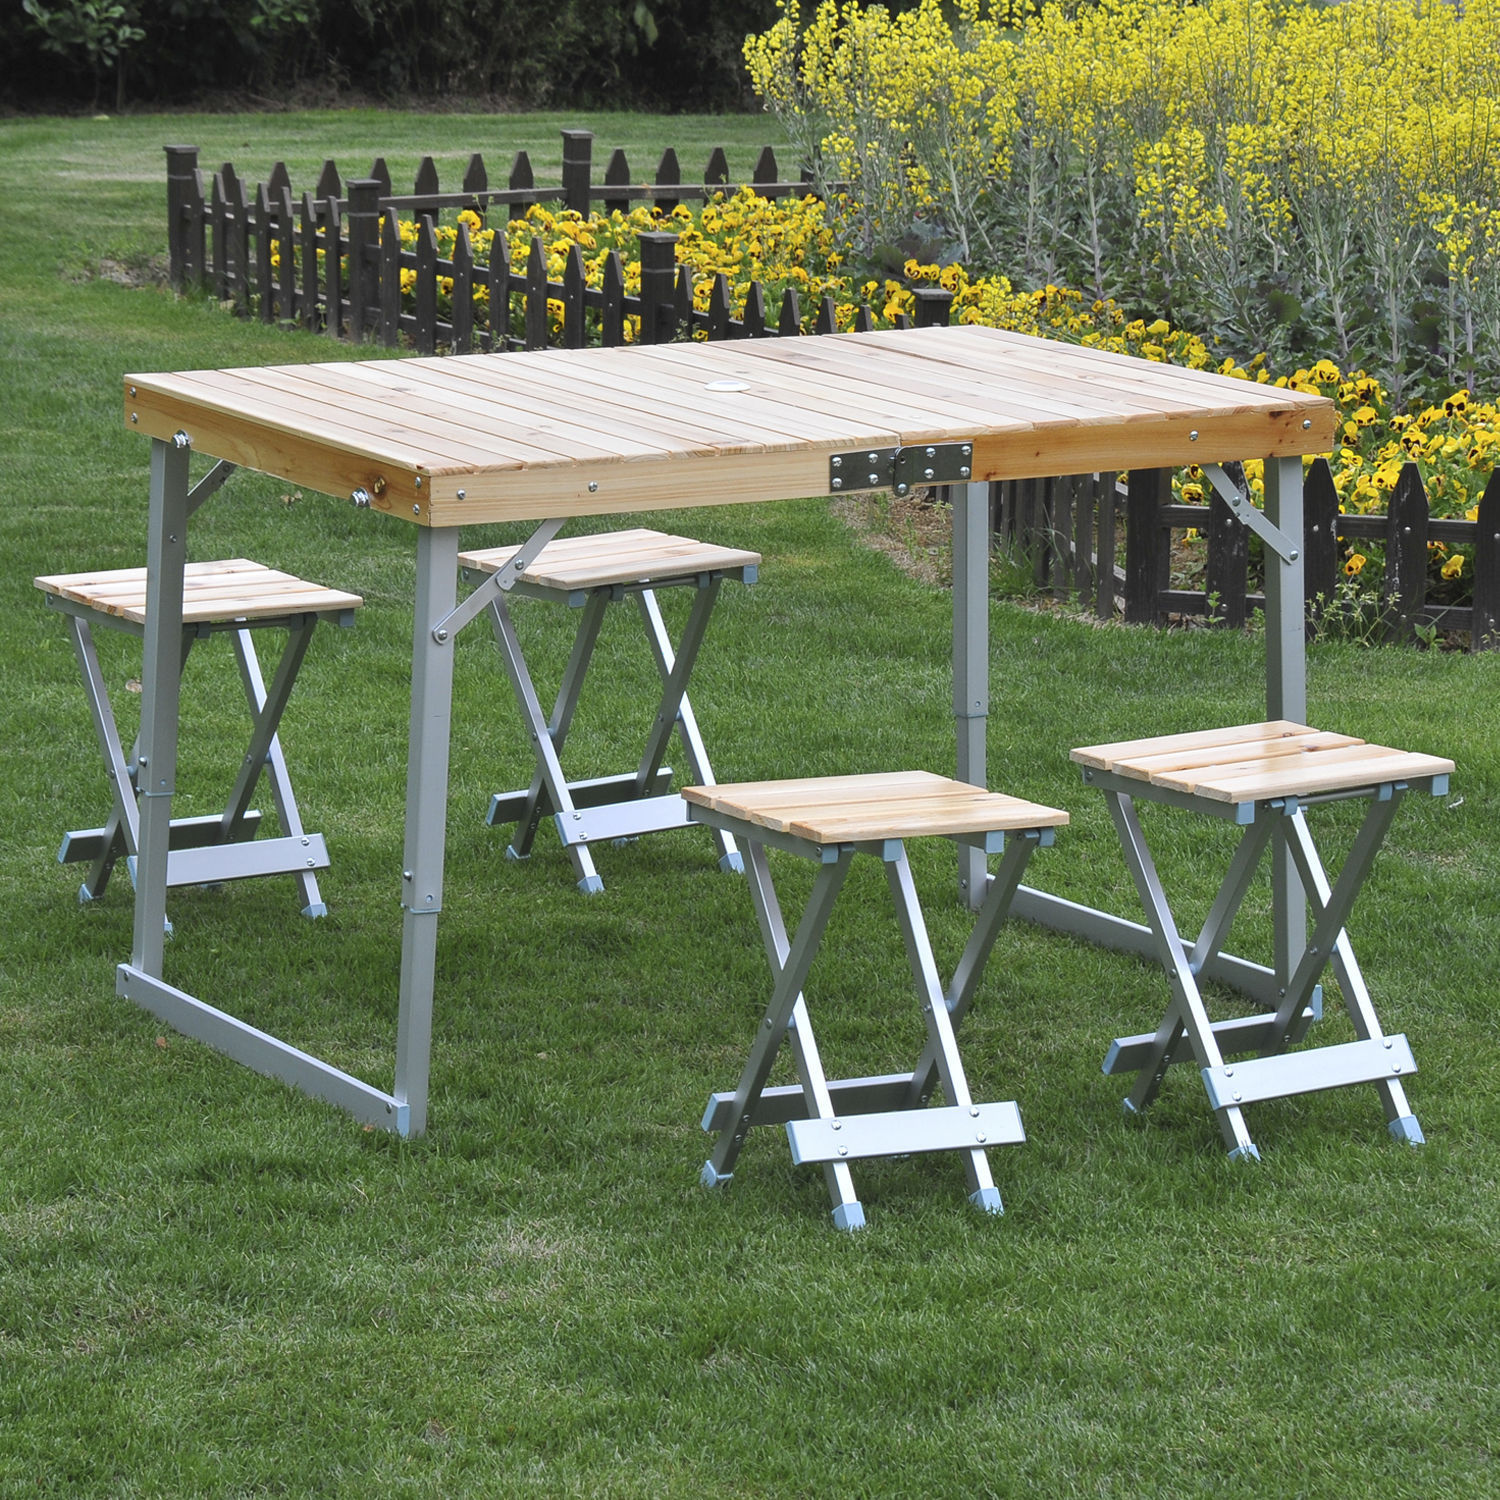 folding chair picnic table waterproof garden covers portable 4 seats chairs camping park outdoor details about wood aluminum